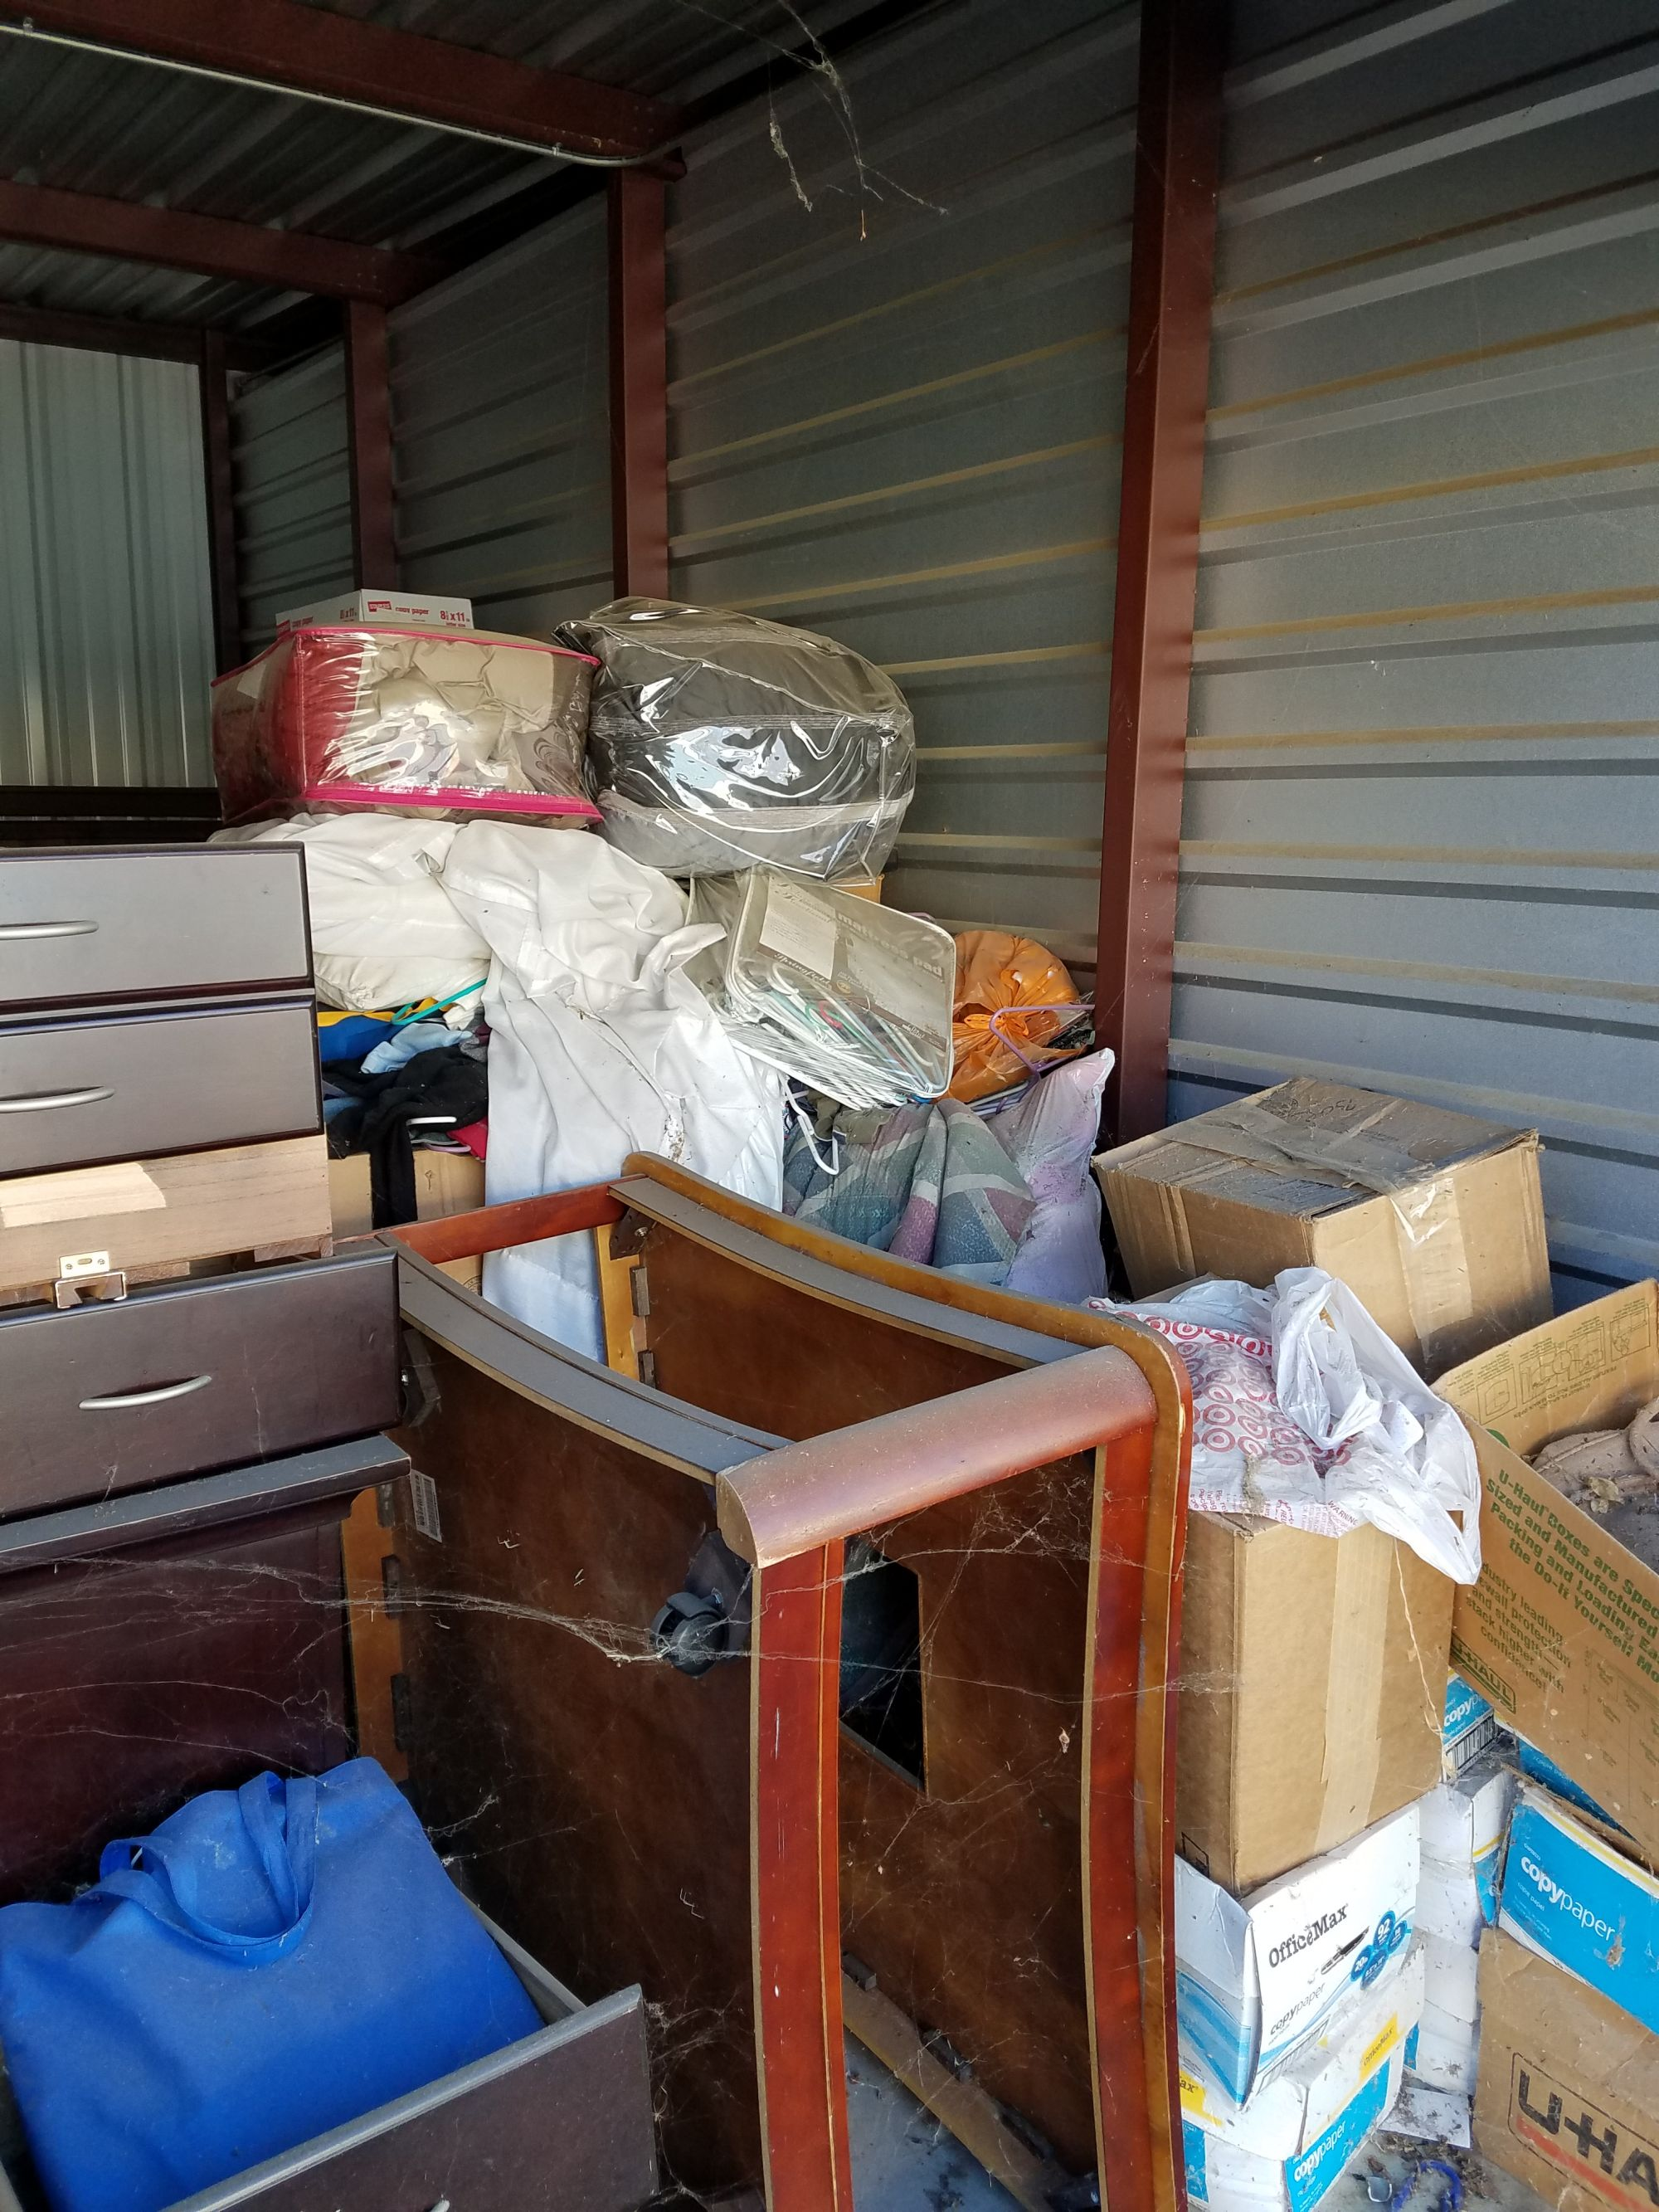 ... for online and onsite storage auction services in the United States and Canada. The new site which provides a more dynamic bidding experience for over ... & Storage Unit Auction: 538360   Tulsa OK   StorageTreasures.com